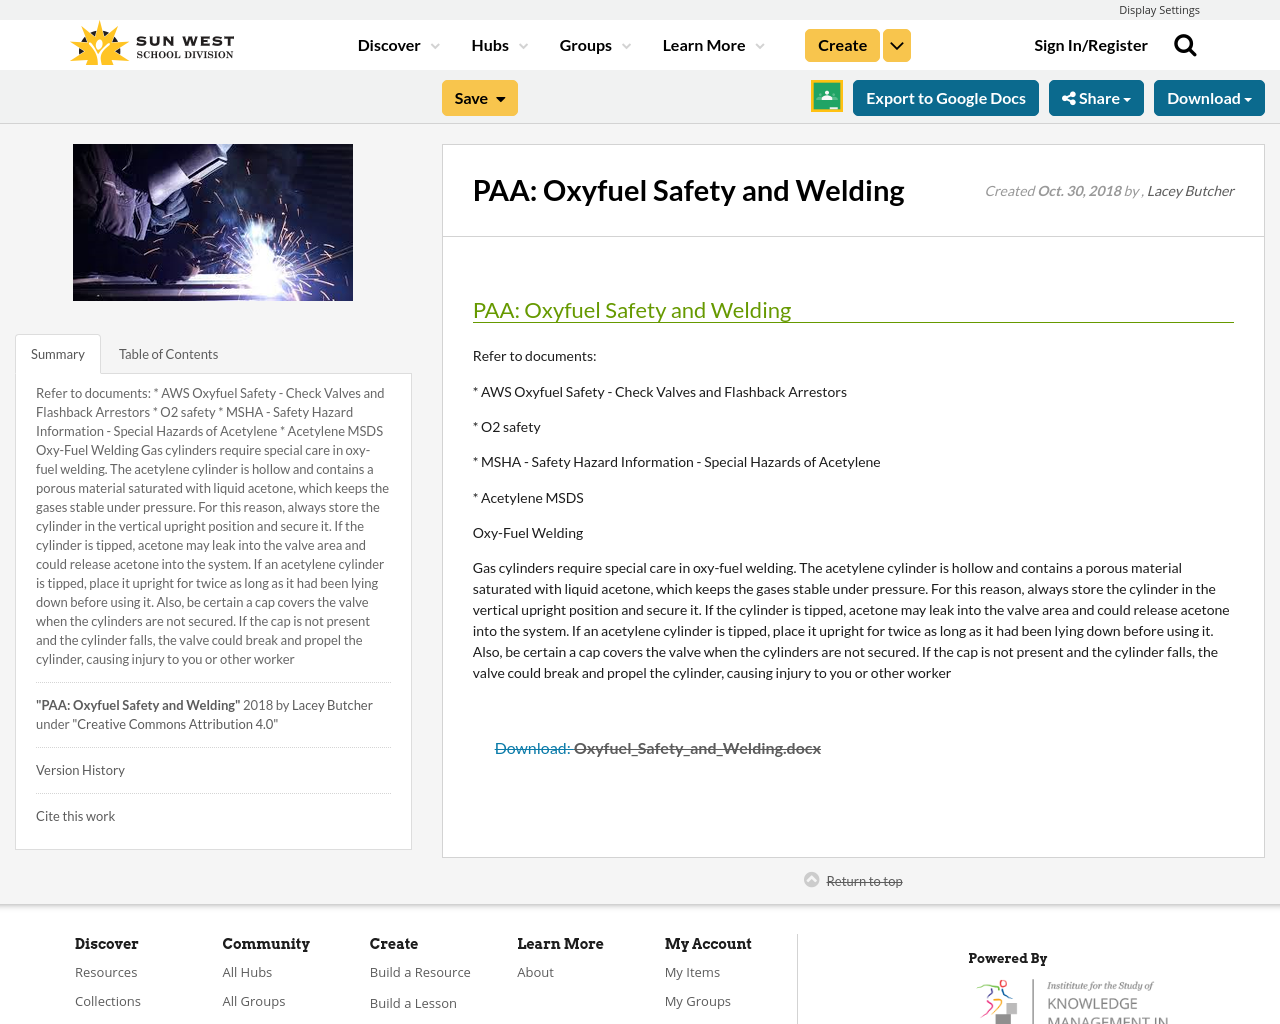 PAA: Oxyfuel Safety and Welding | Resource Bank